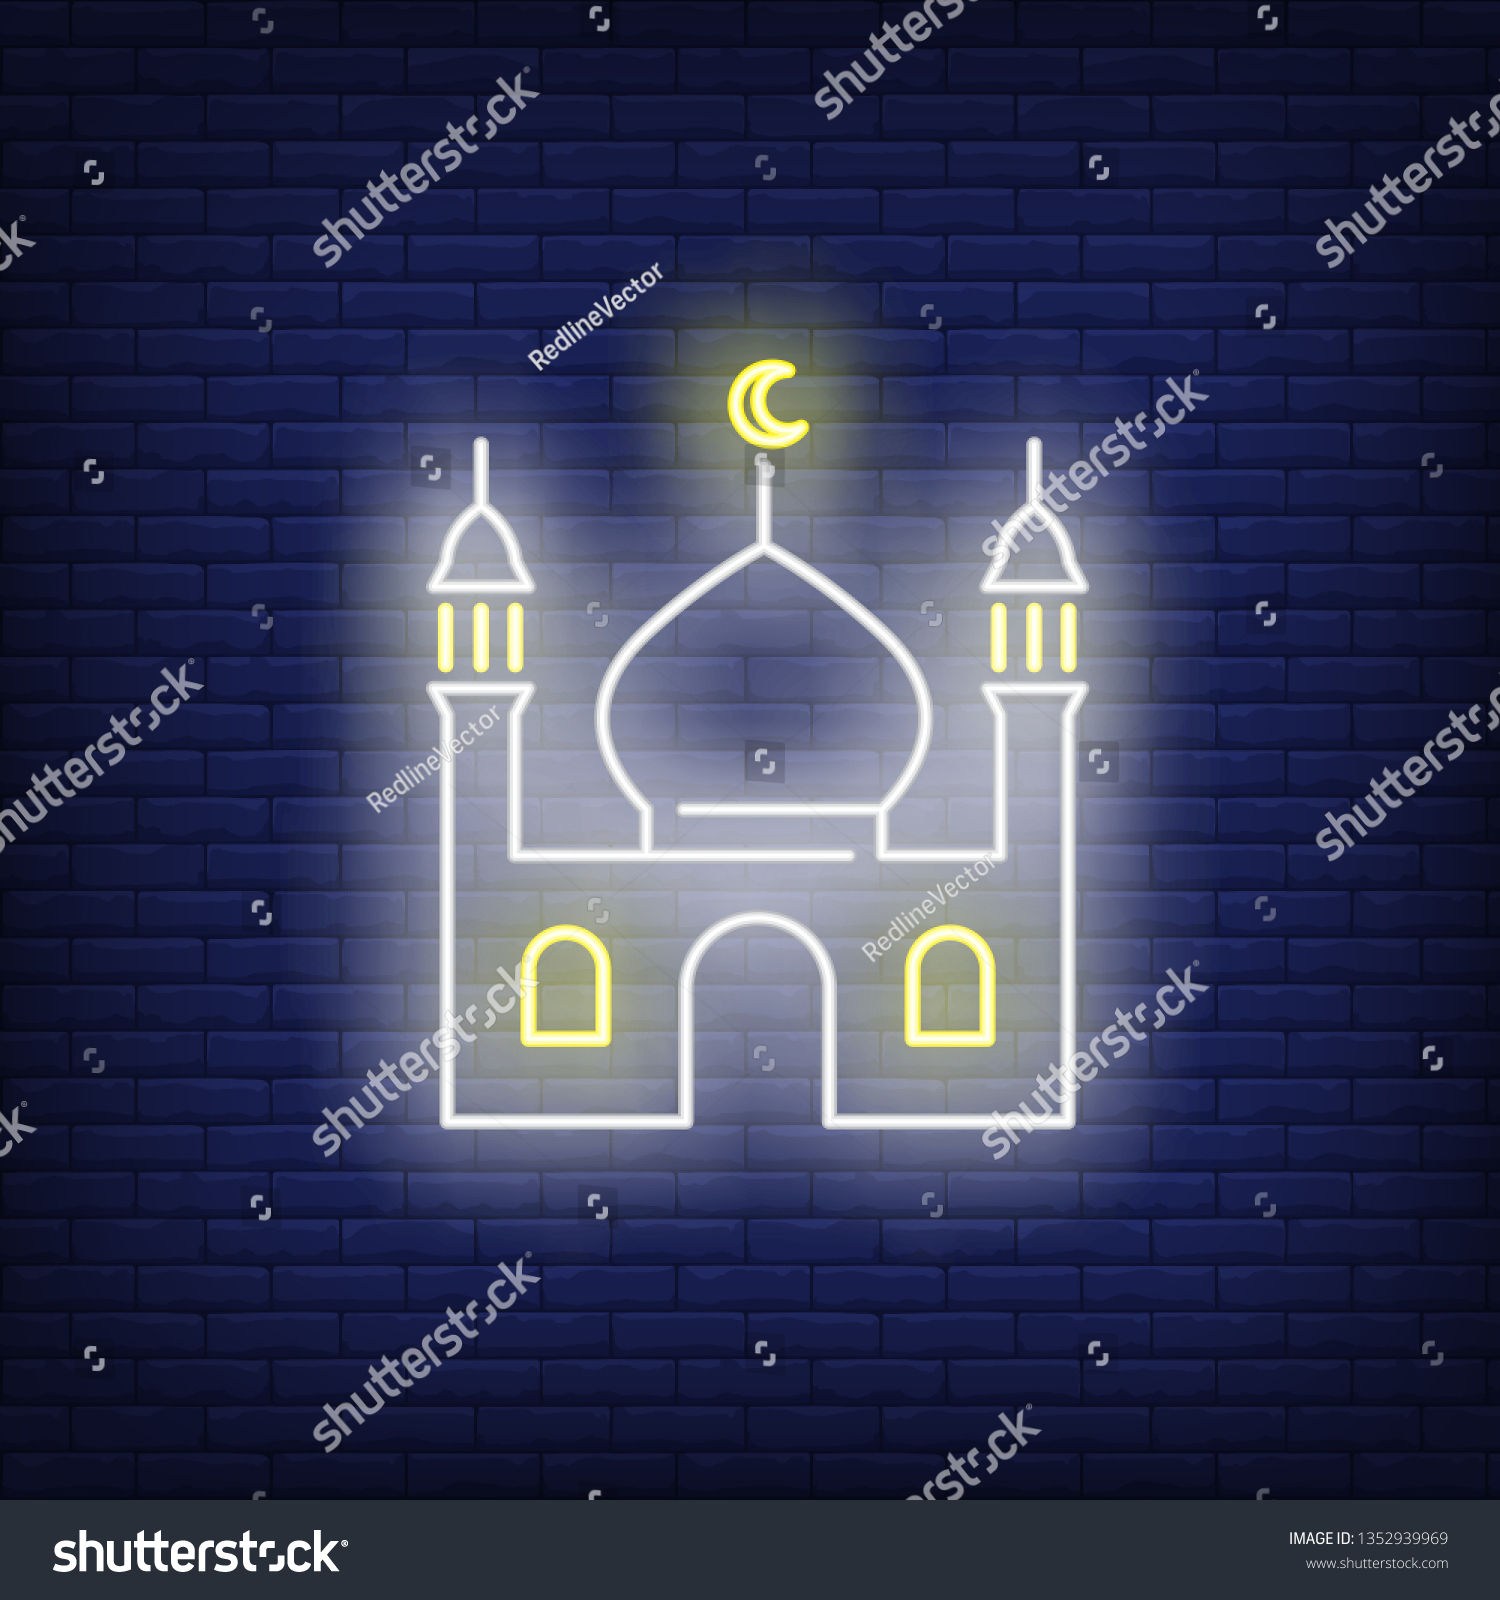 hight resolution of mosque neon sign religion culture and architecture design night bright neon sign colorful billboard light banner vector illustration in neon style